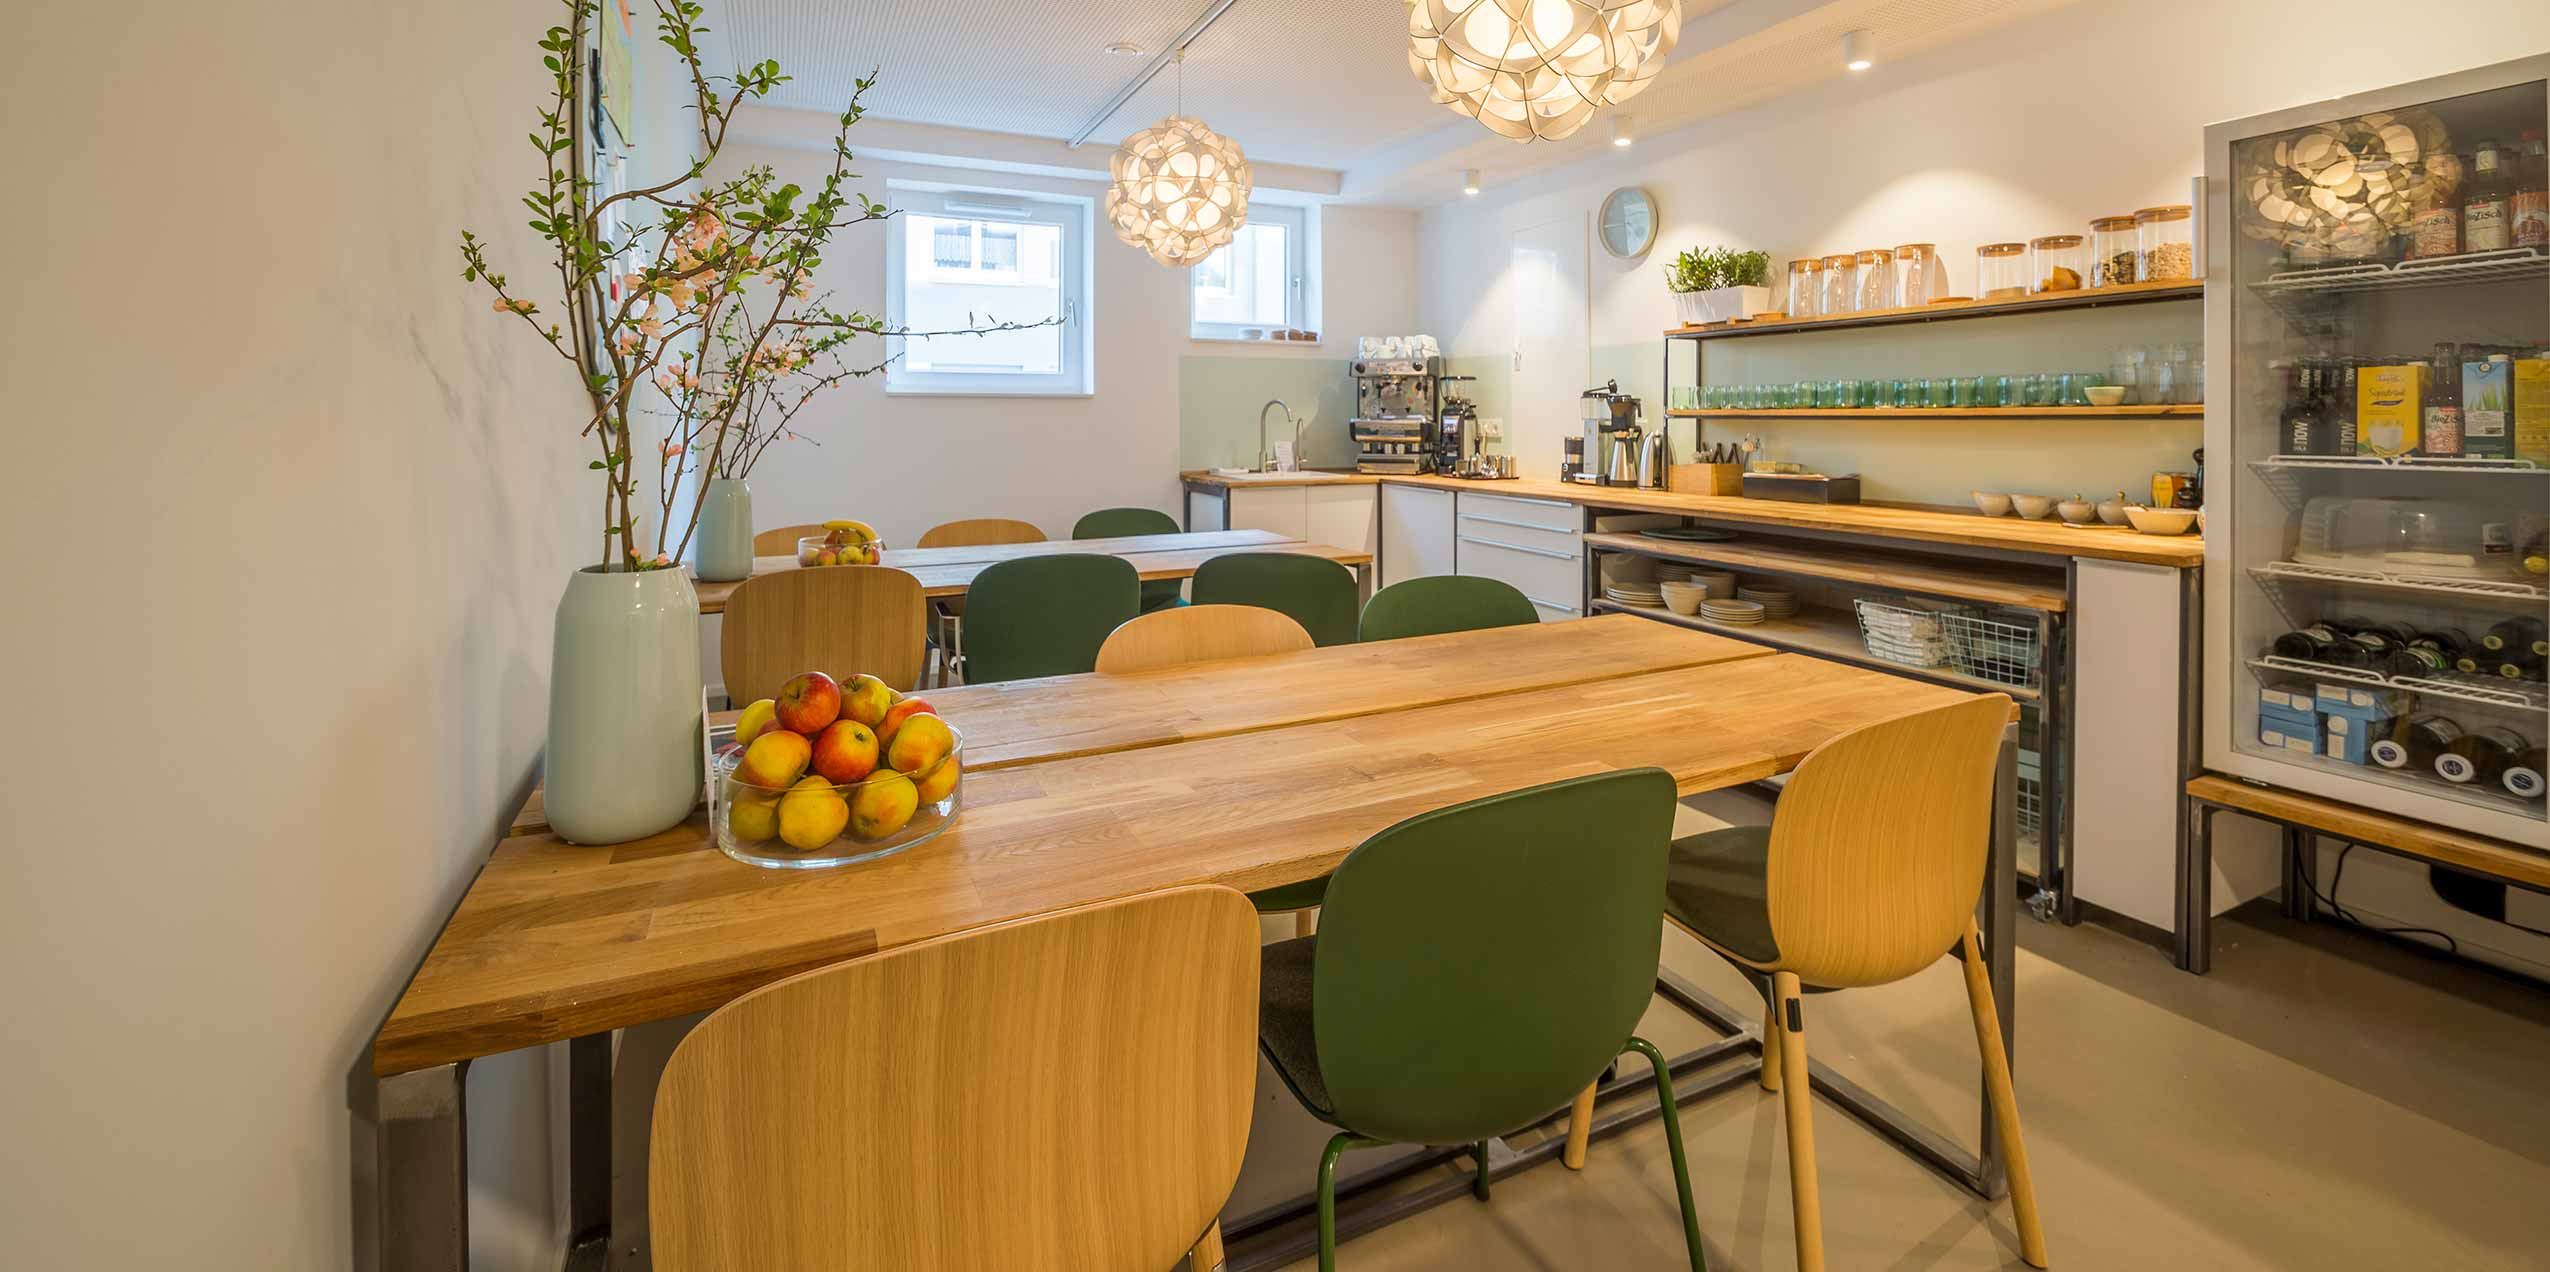 cowork office eating break room cafeteria wooden seating canteen kitchen tables and chairs